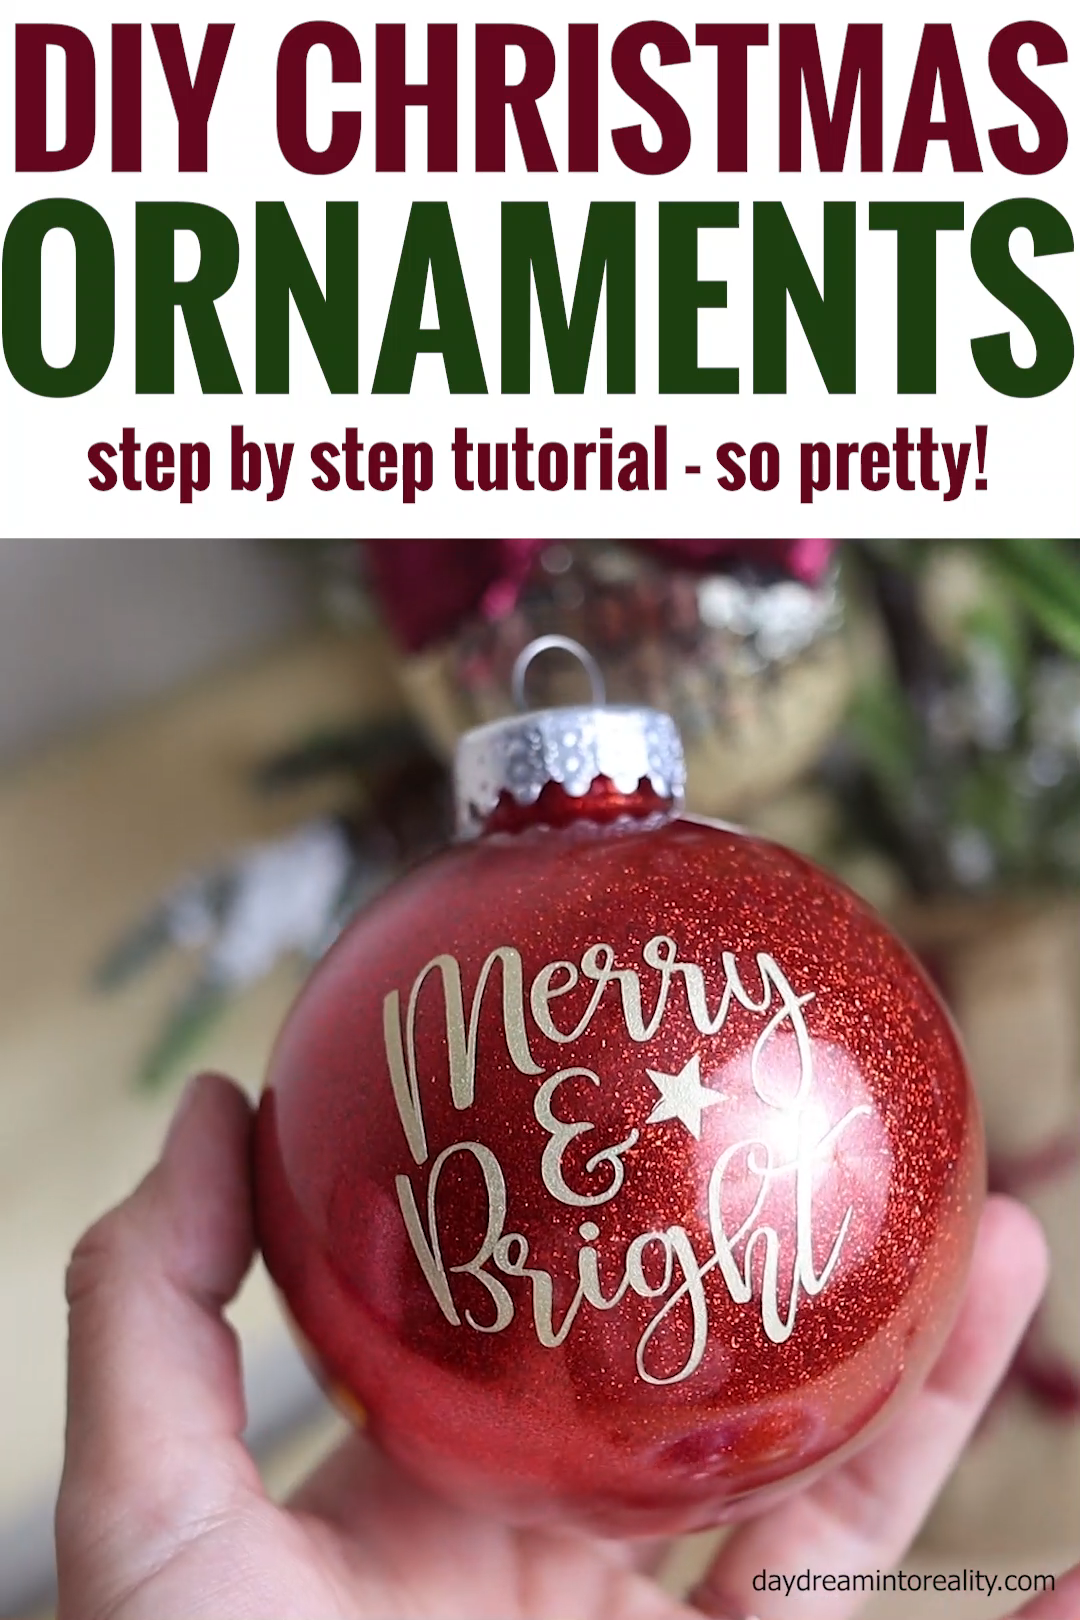 Diy Christmas Ornaments With Cricut Glitter Paint More Video Video Christmas Diy Cricut Christmas Ideas Christmas Ornaments